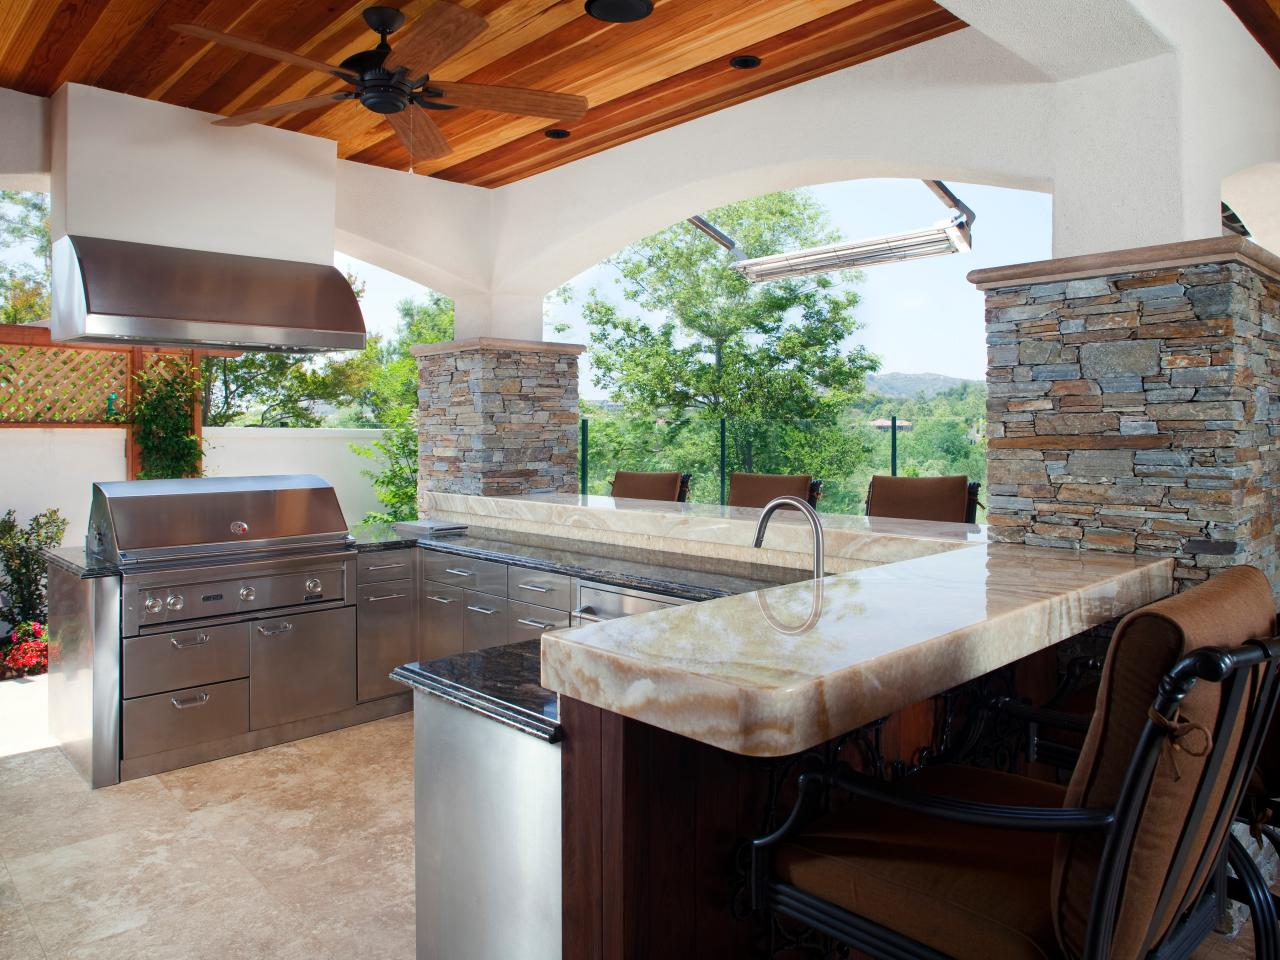 Luxury outdoor kitchens pictures tips expert ideas hgtv for Luxury outdoor kitchen